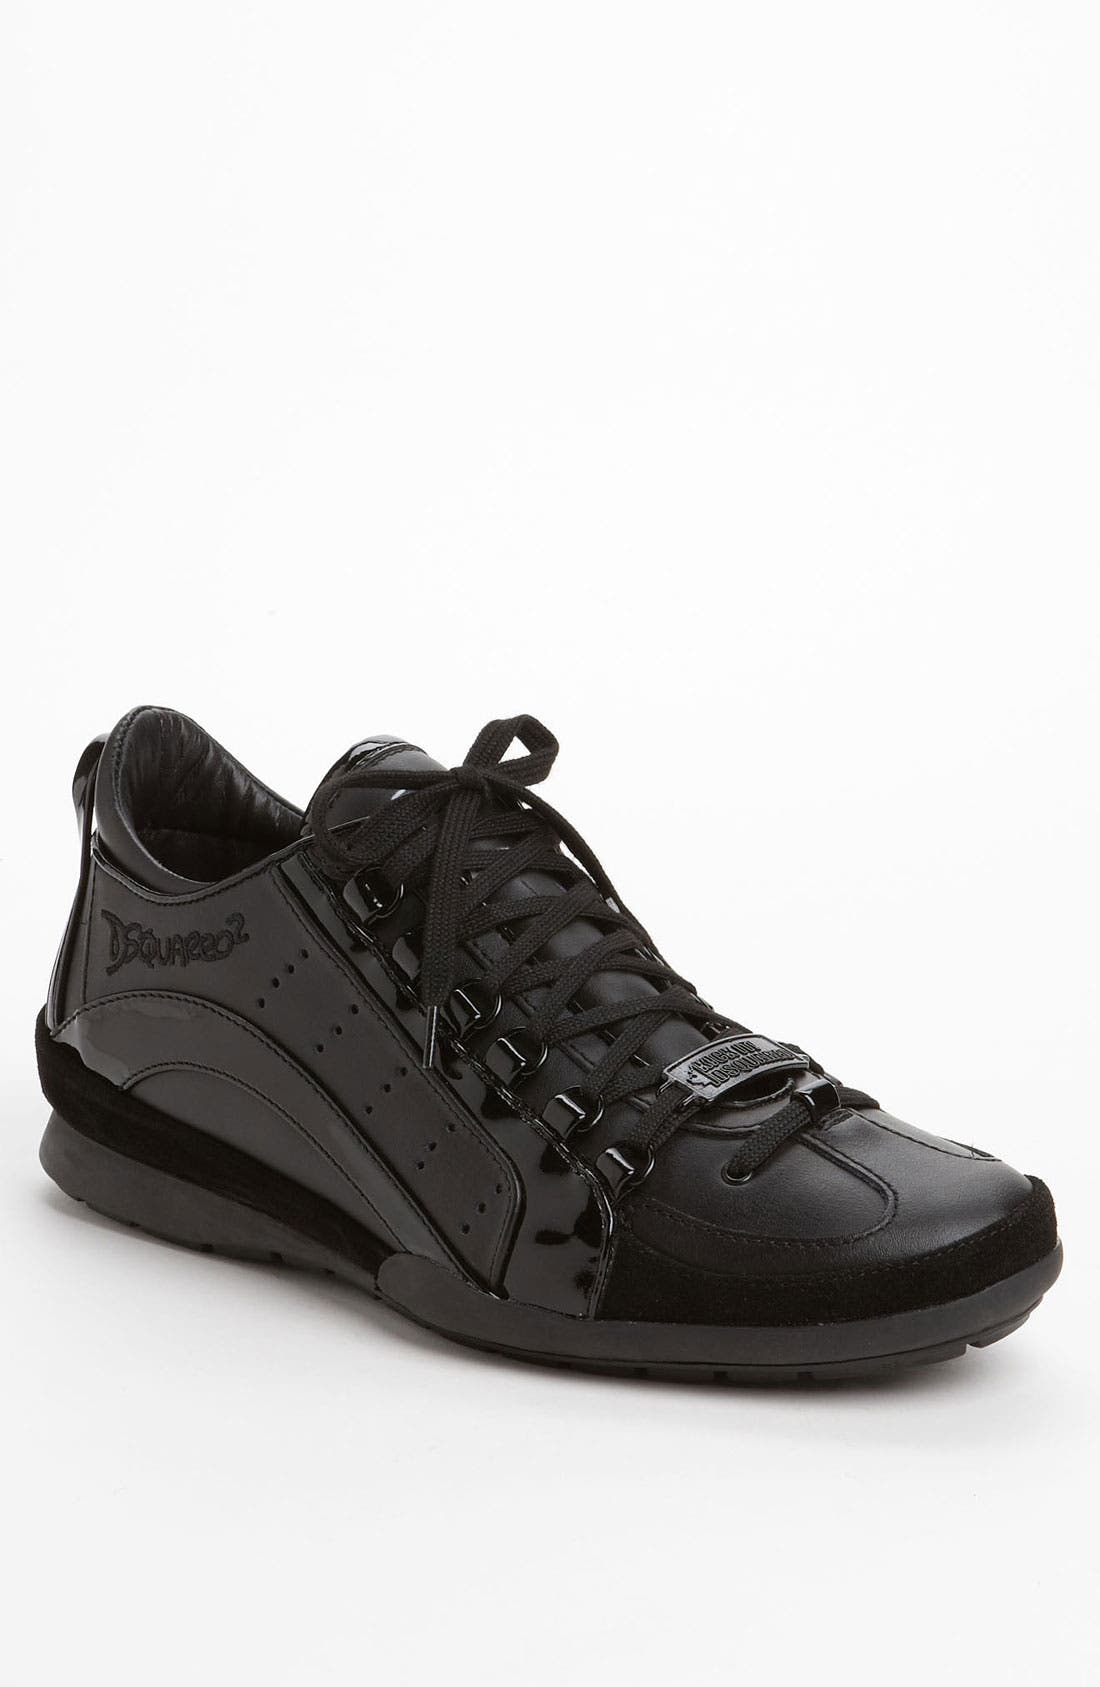 Alternate Image 1 Selected - Dsquared2 '551' Sport Sneaker